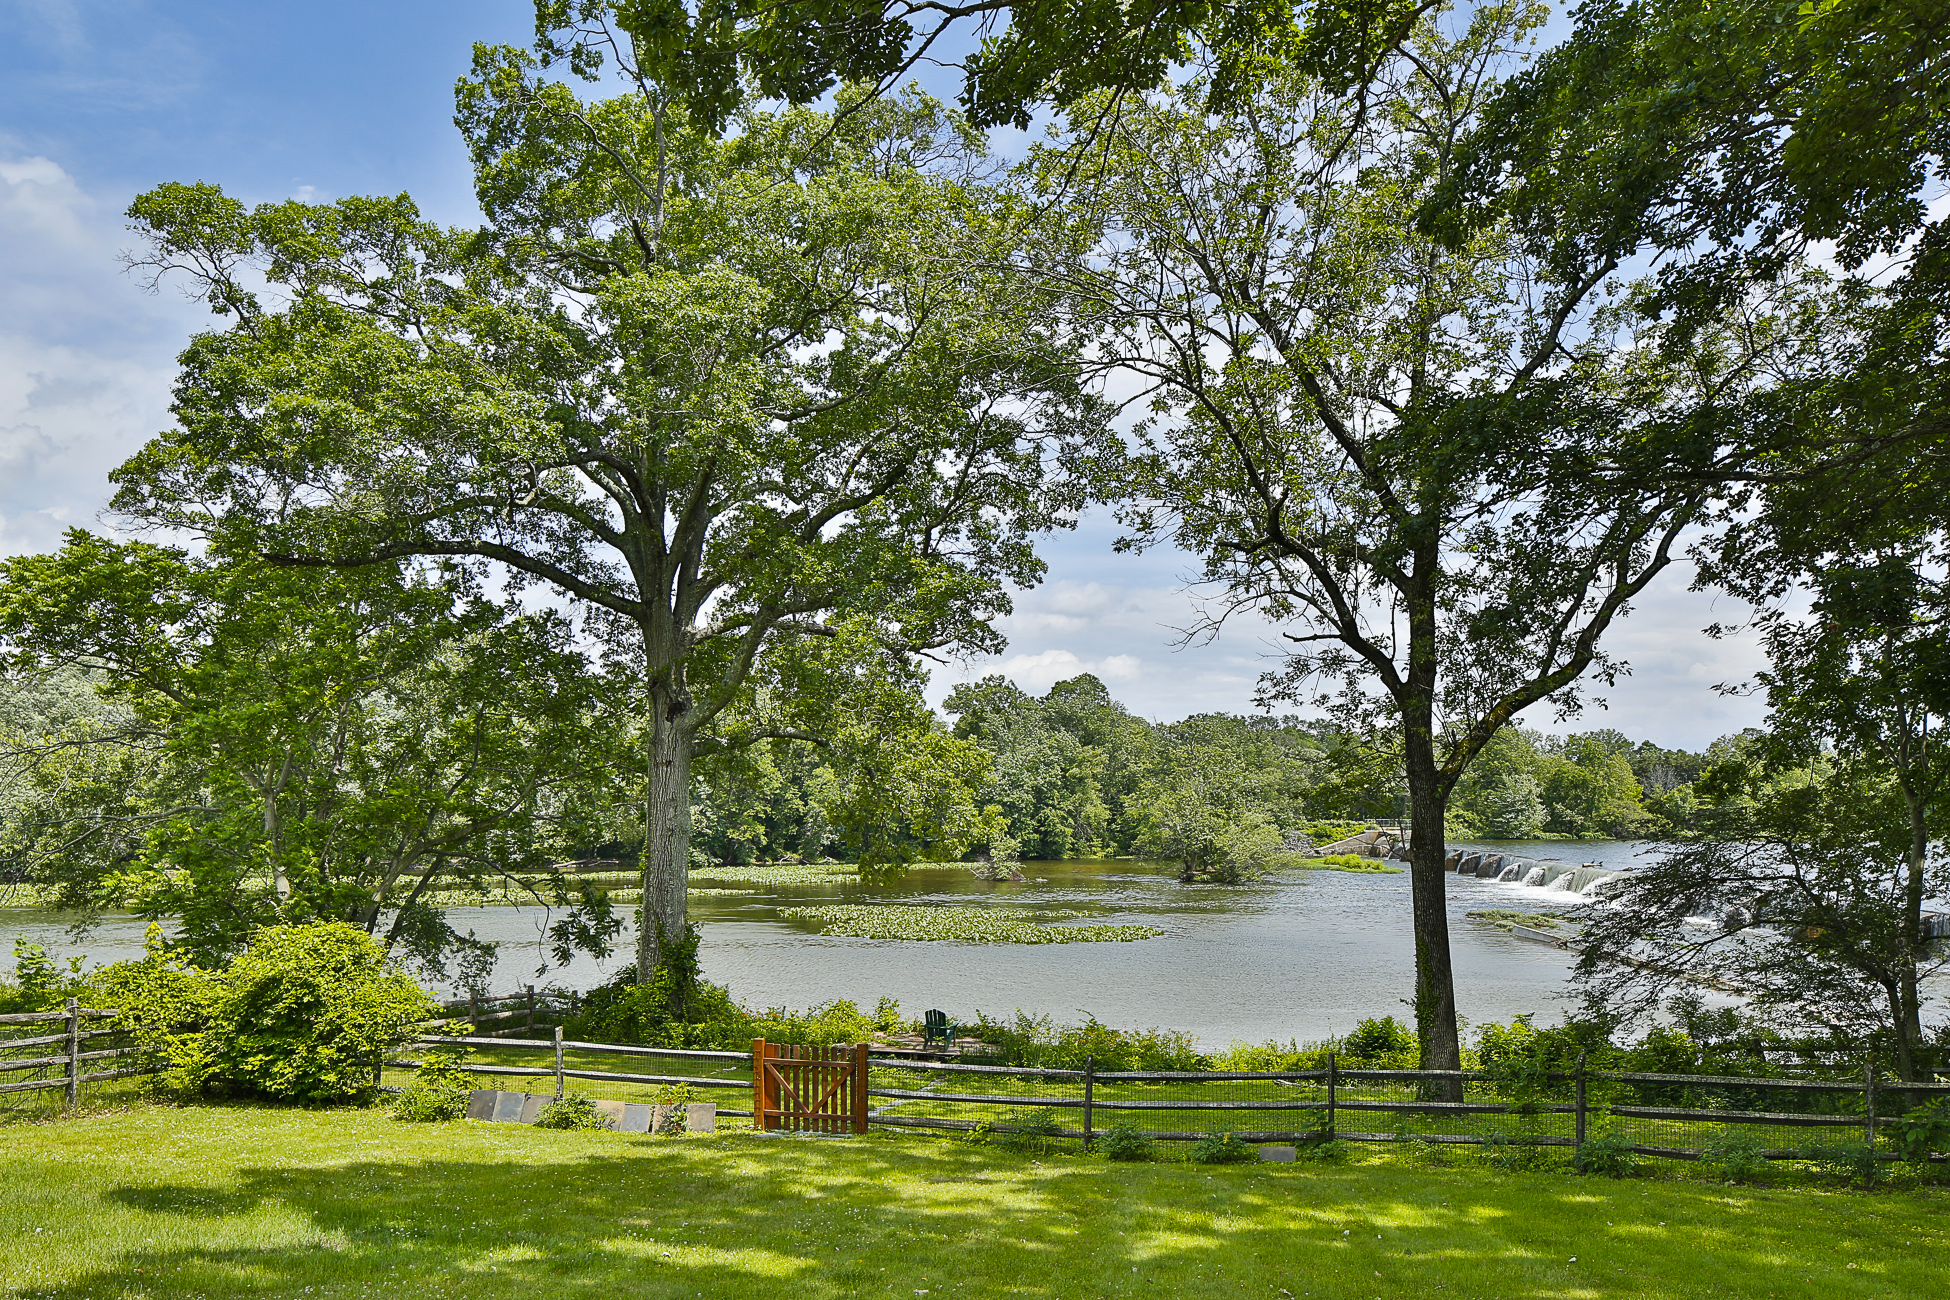 Single Family Home for Sale at Incredible Lake Views Fill Finely-Crafted Spaces 1041 Princeton Kingston Road Princeton, New Jersey, 08540 United States